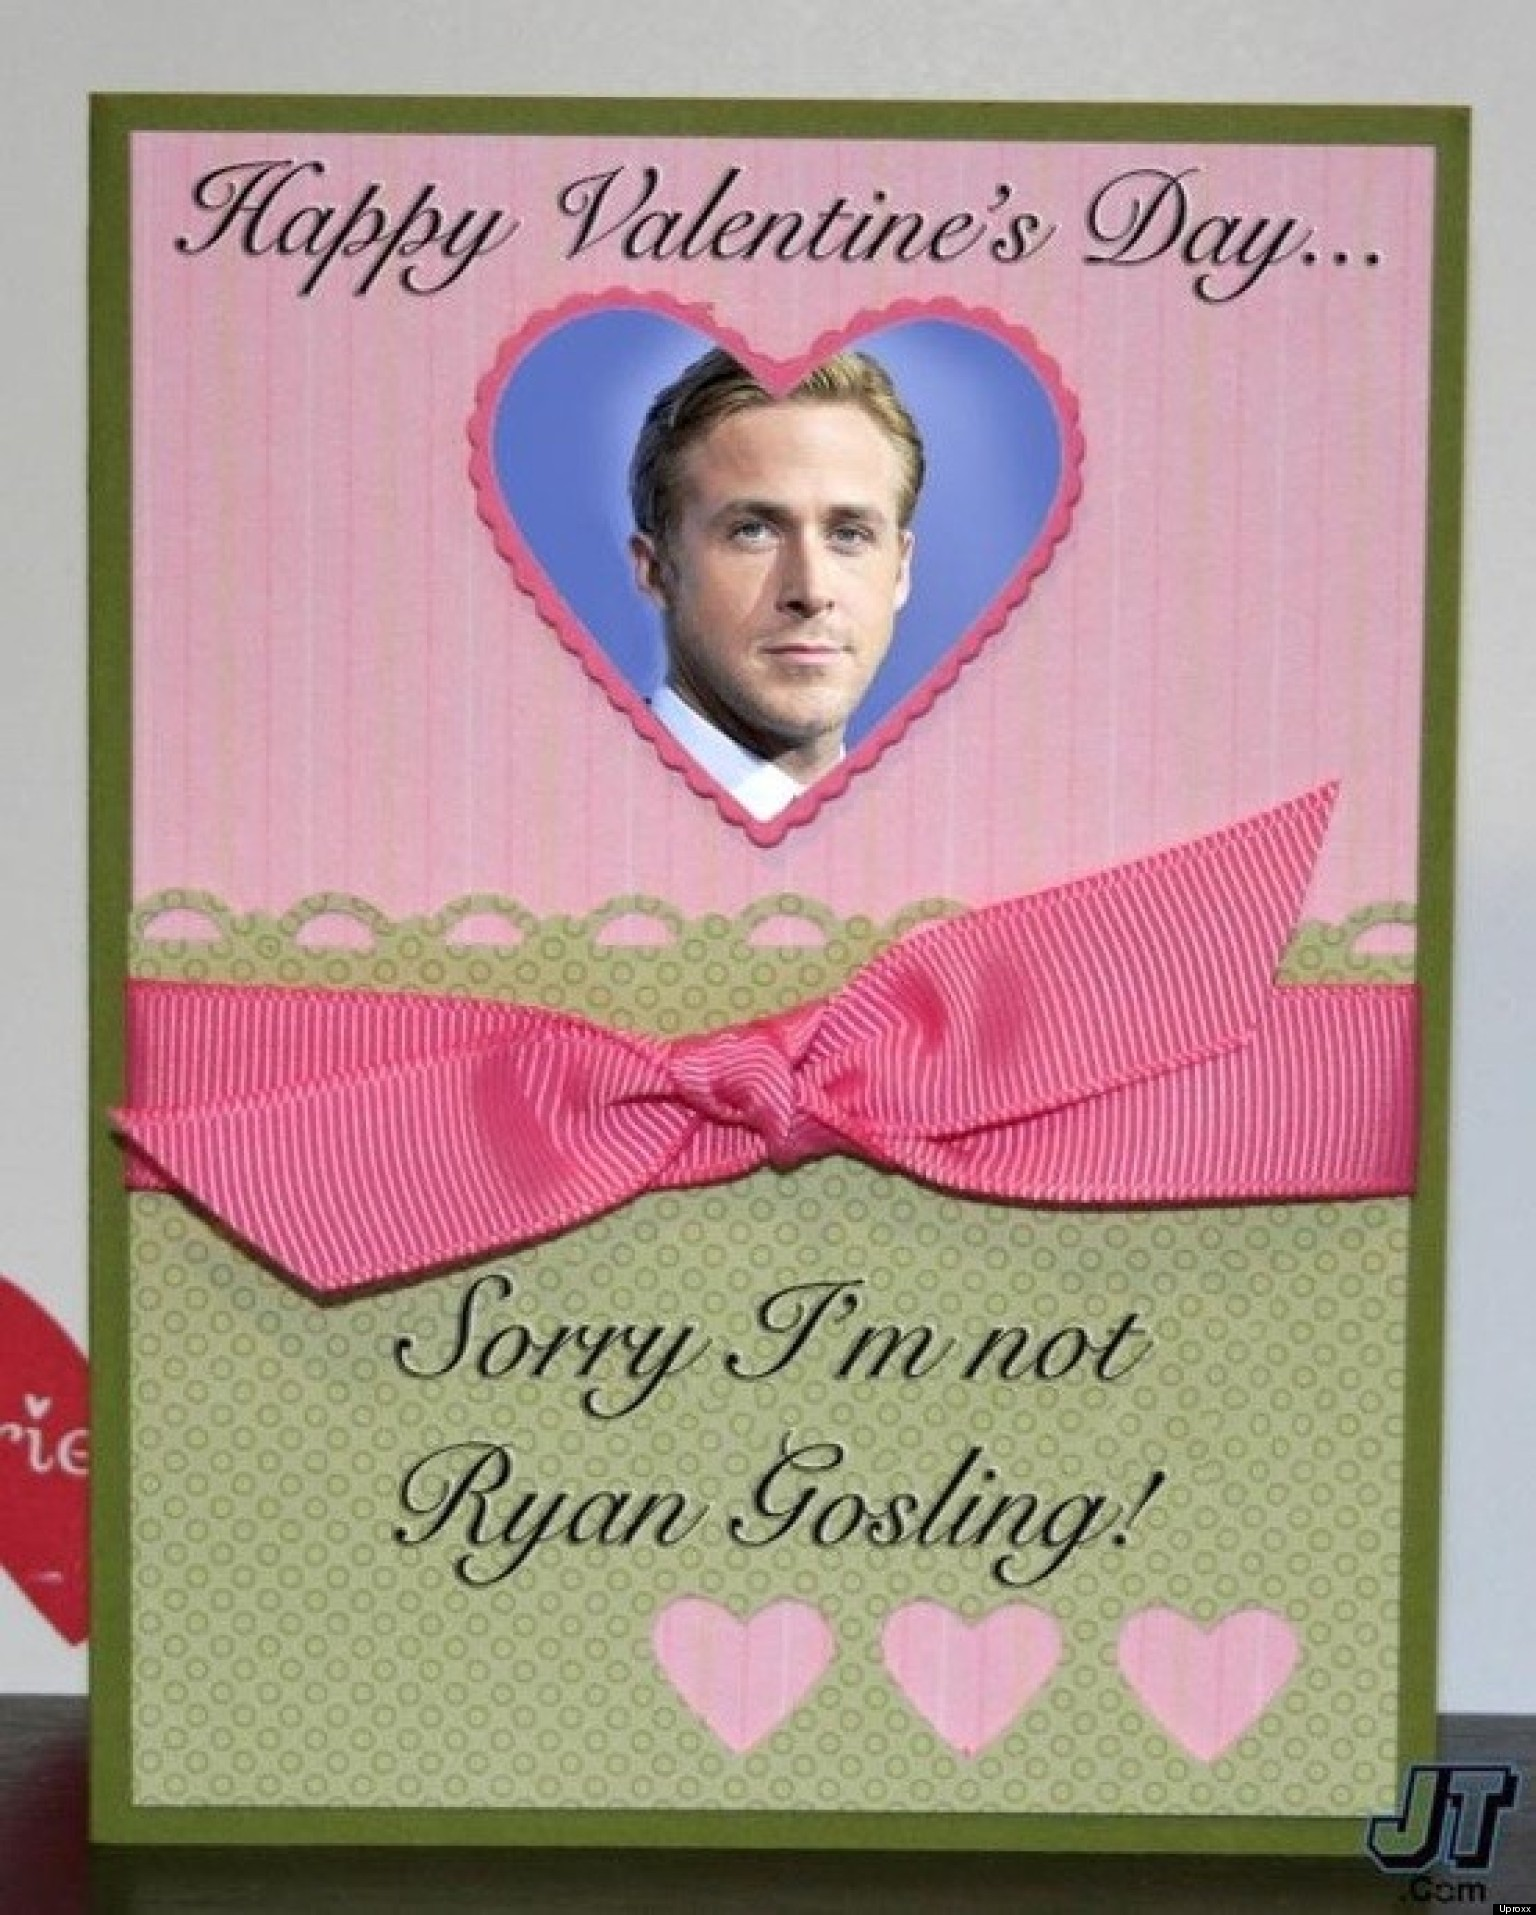 25 Funny Valentines Day Cards PHOTOS